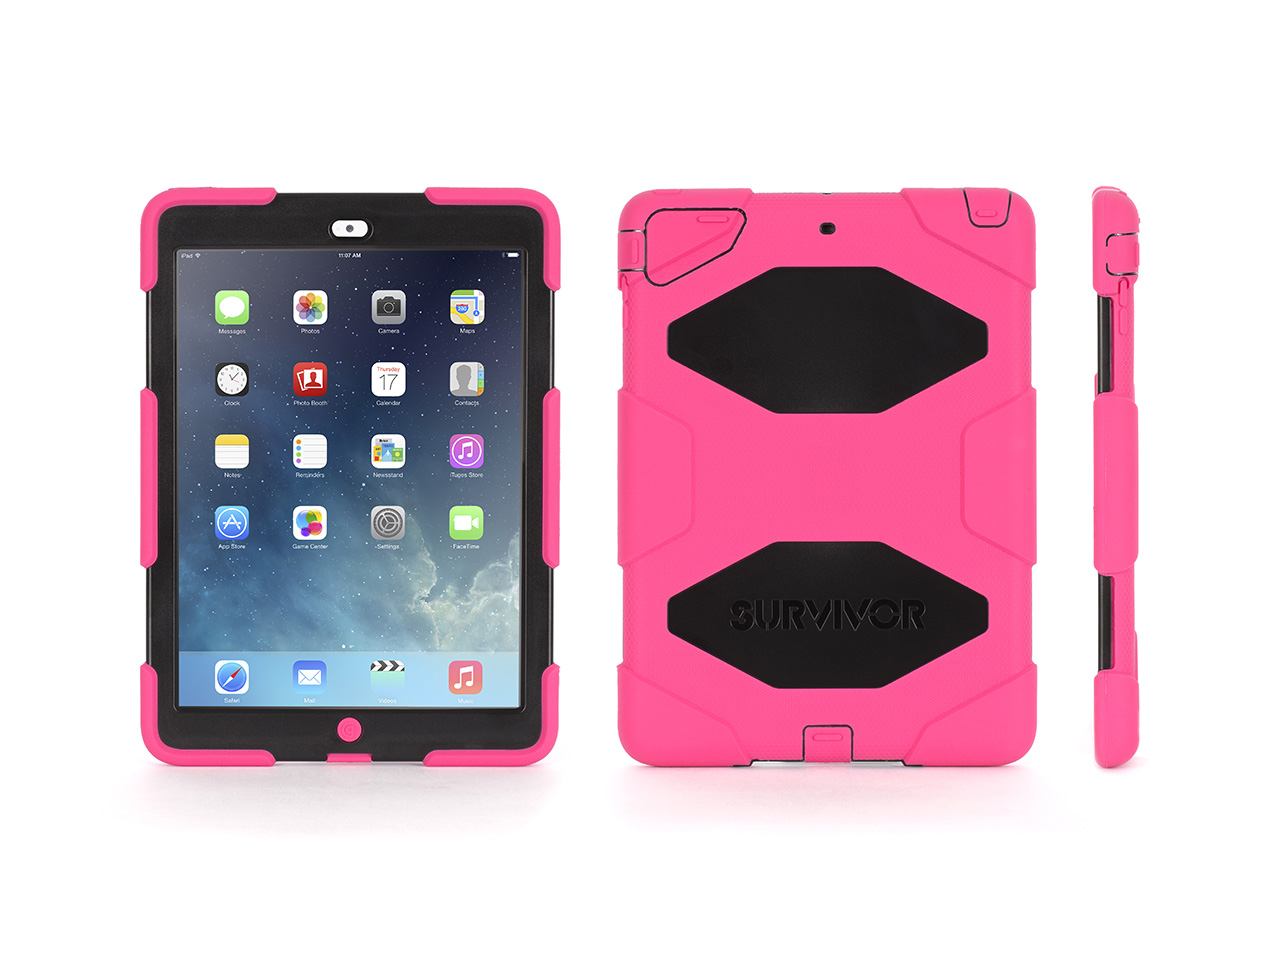 Griffin Survivor All-Terrain Case + Stand for iPad Air-Military-Duty Case- Direct from Griffin at Sears.com